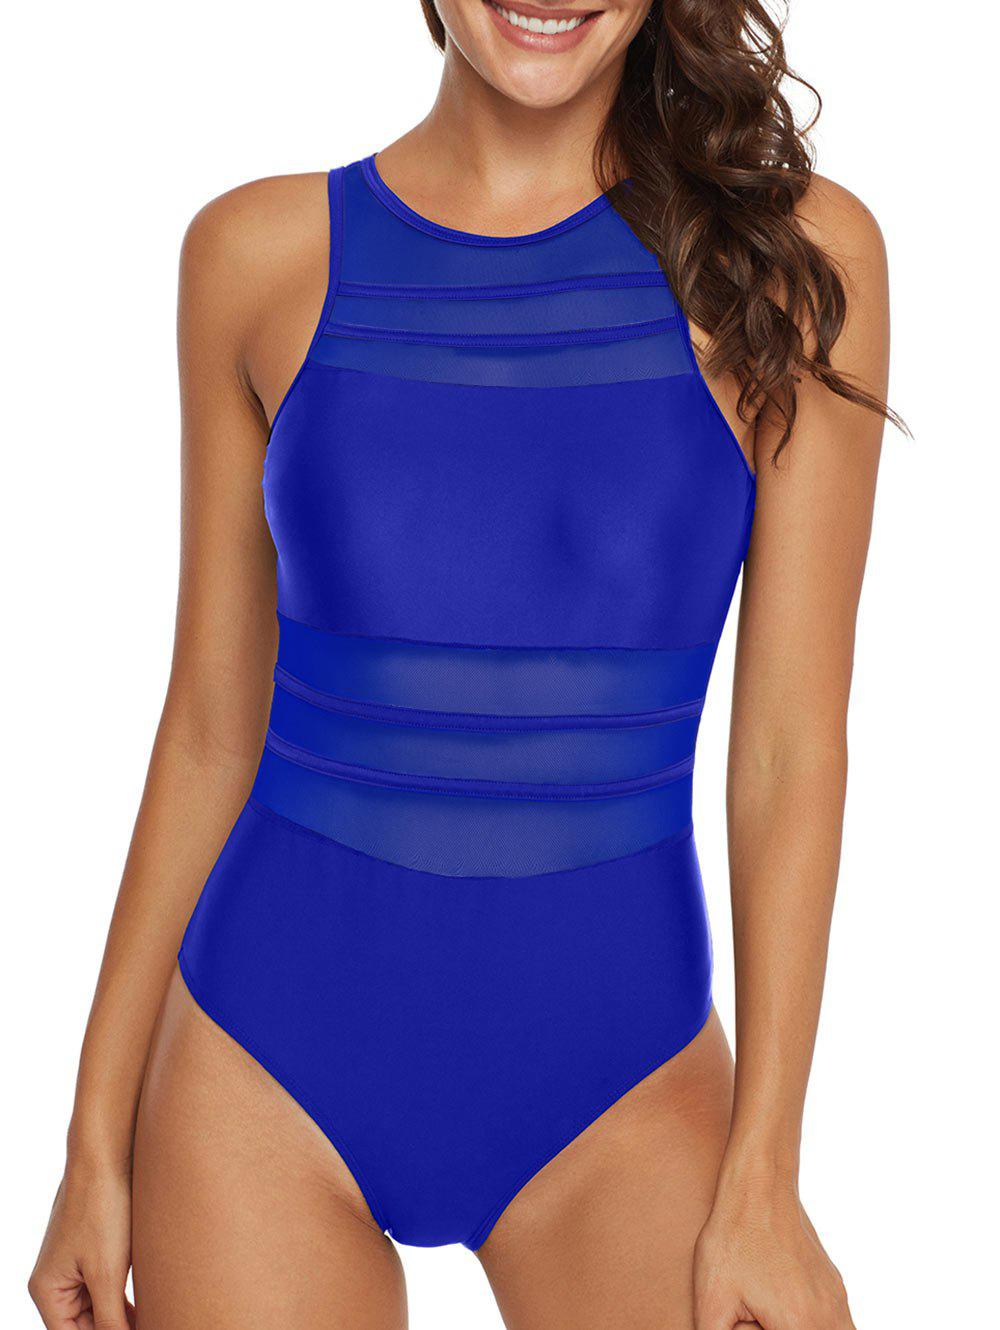 Fancy Mesh Panel Sheer Cutout One-piece Swimsuit